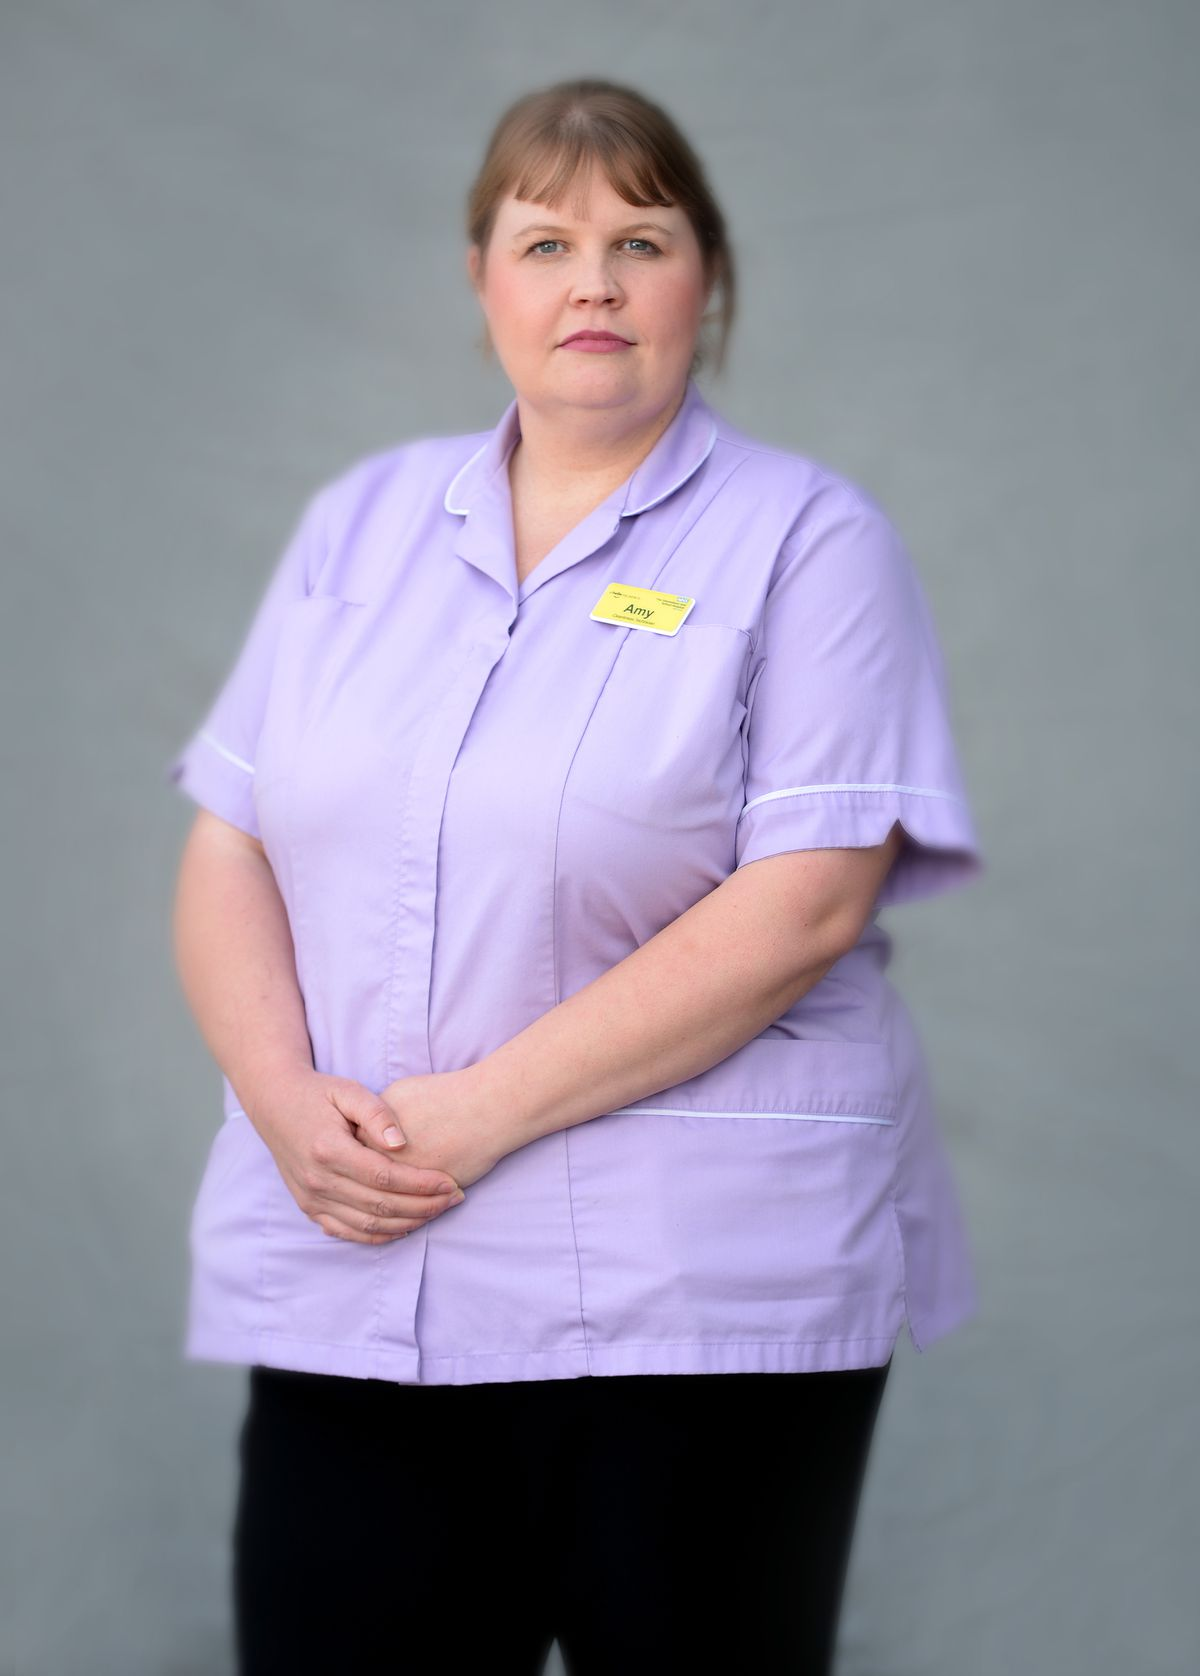 Amy Middle, cleanliness technician